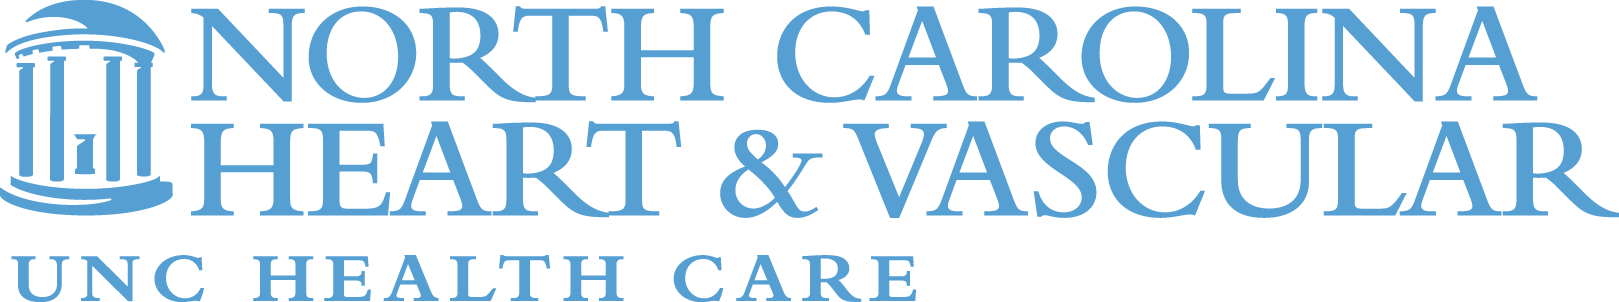 North Carolina Heart & Vascular logo